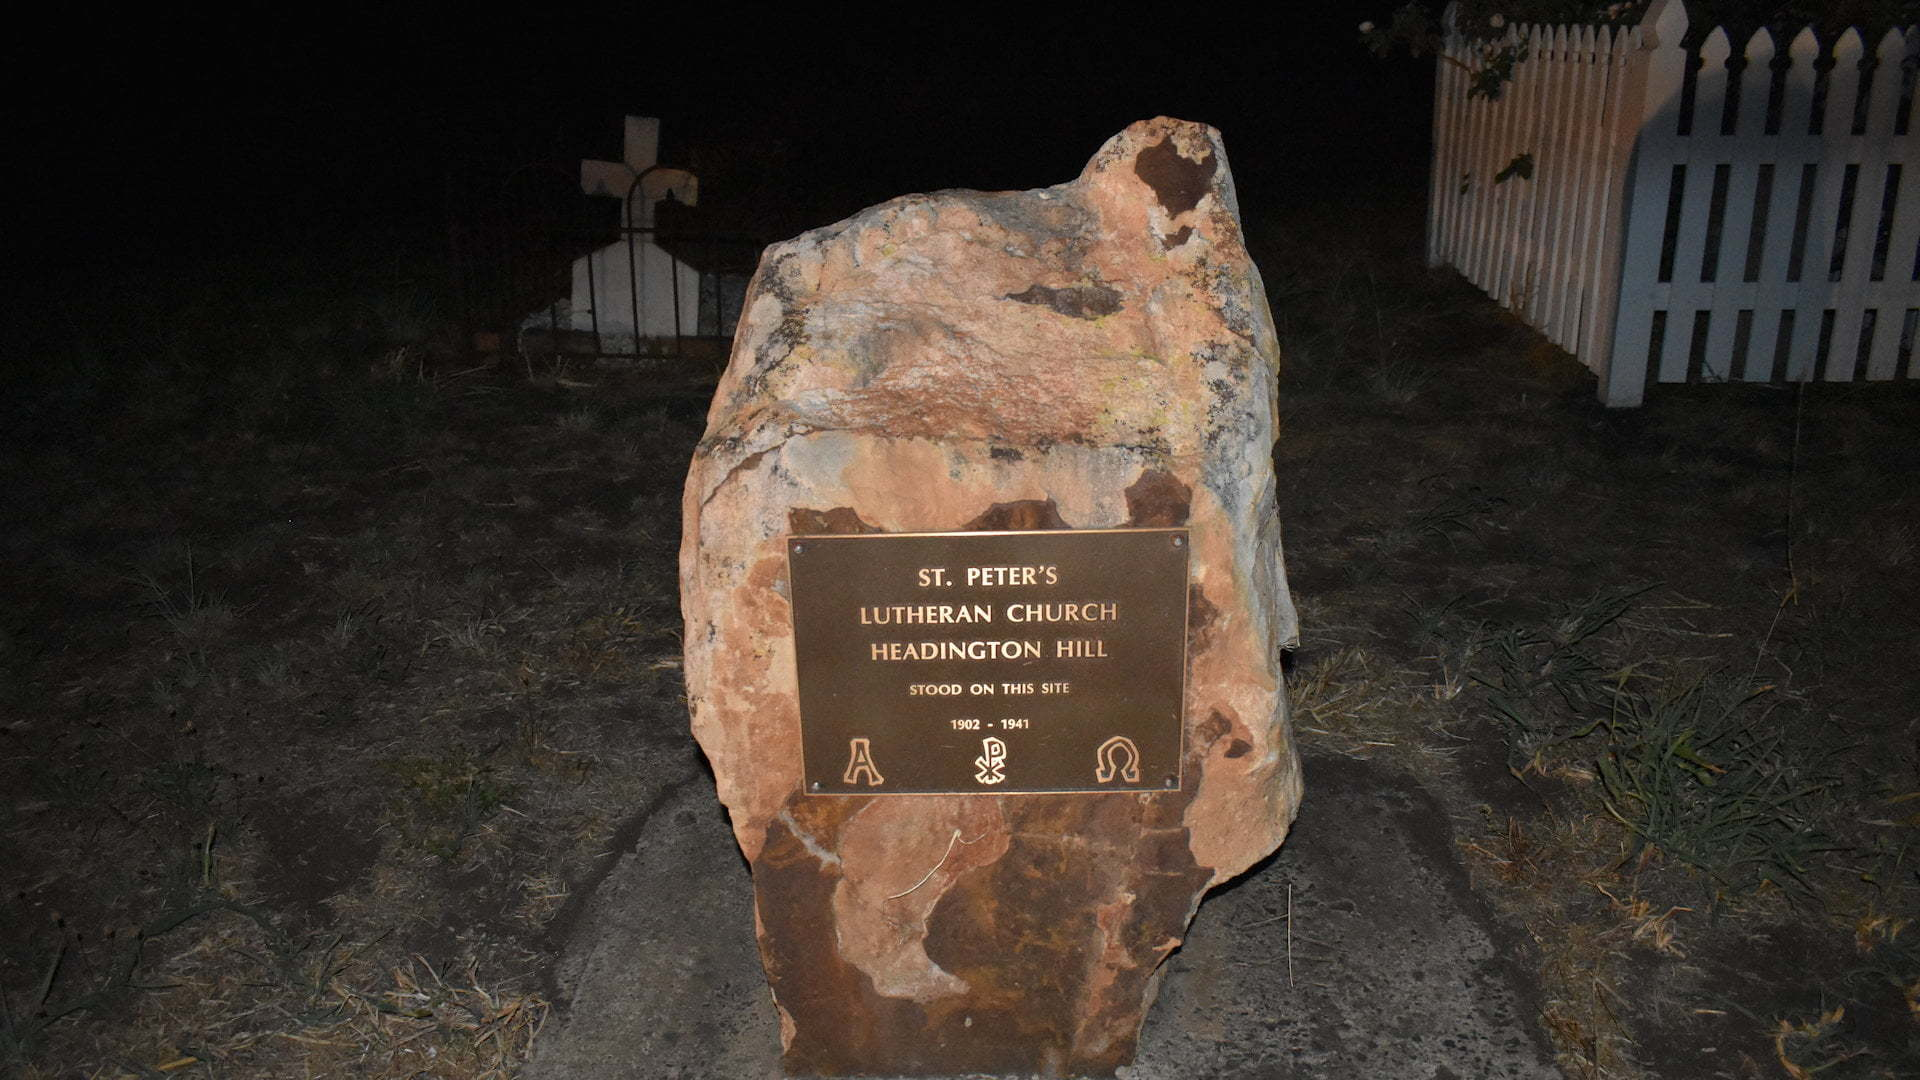 Monument for the historical site of the St Peter's Lutheran Church at Headington Hill